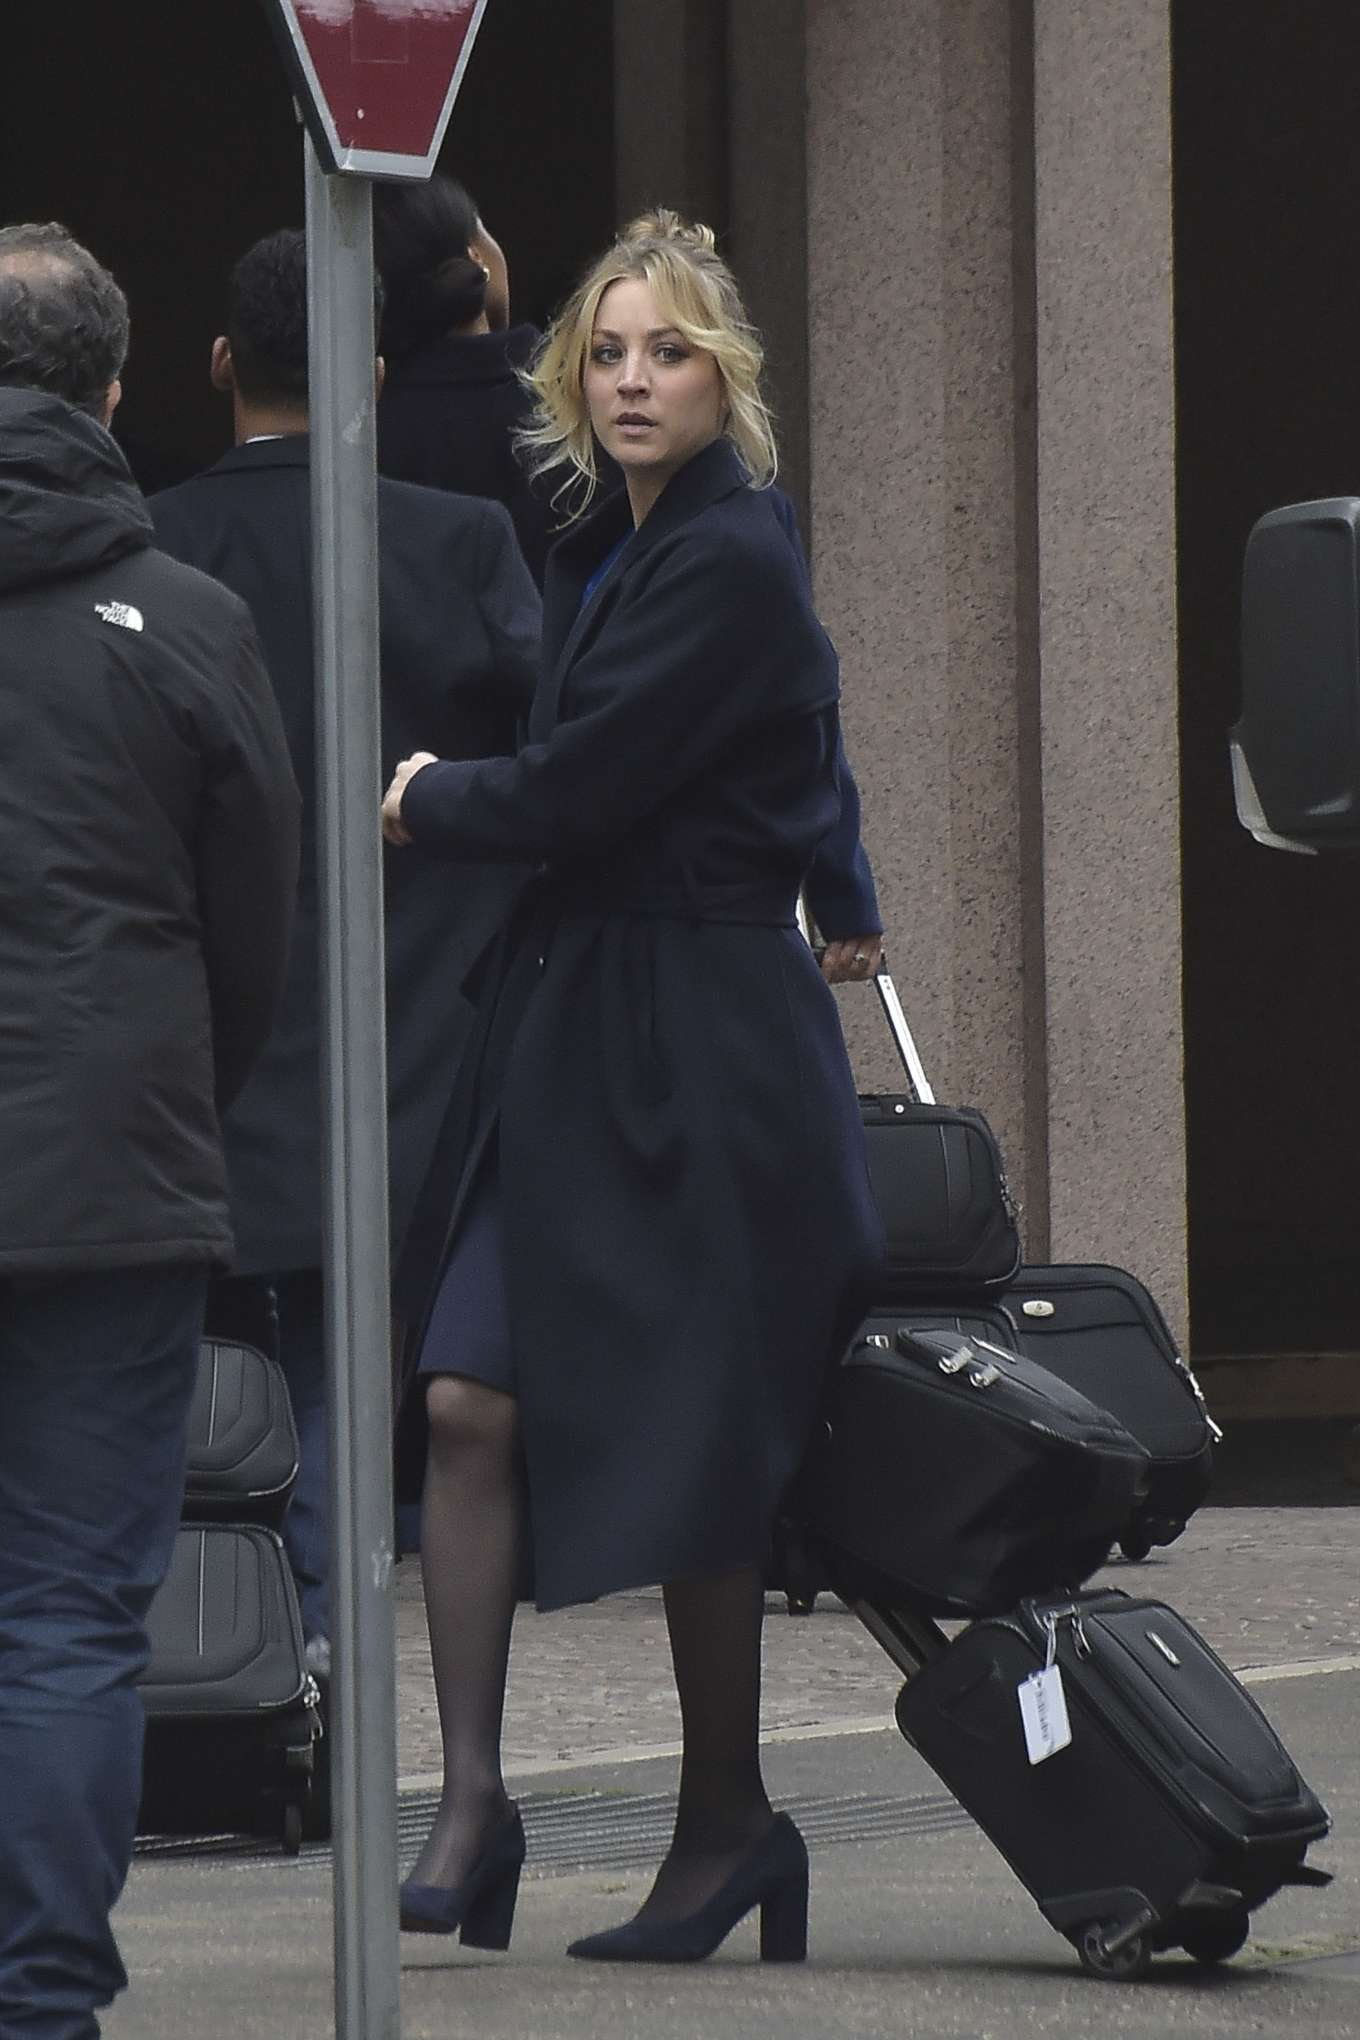 Kaley Cuoco - On the set of 'The Flight Attendant' in Rome